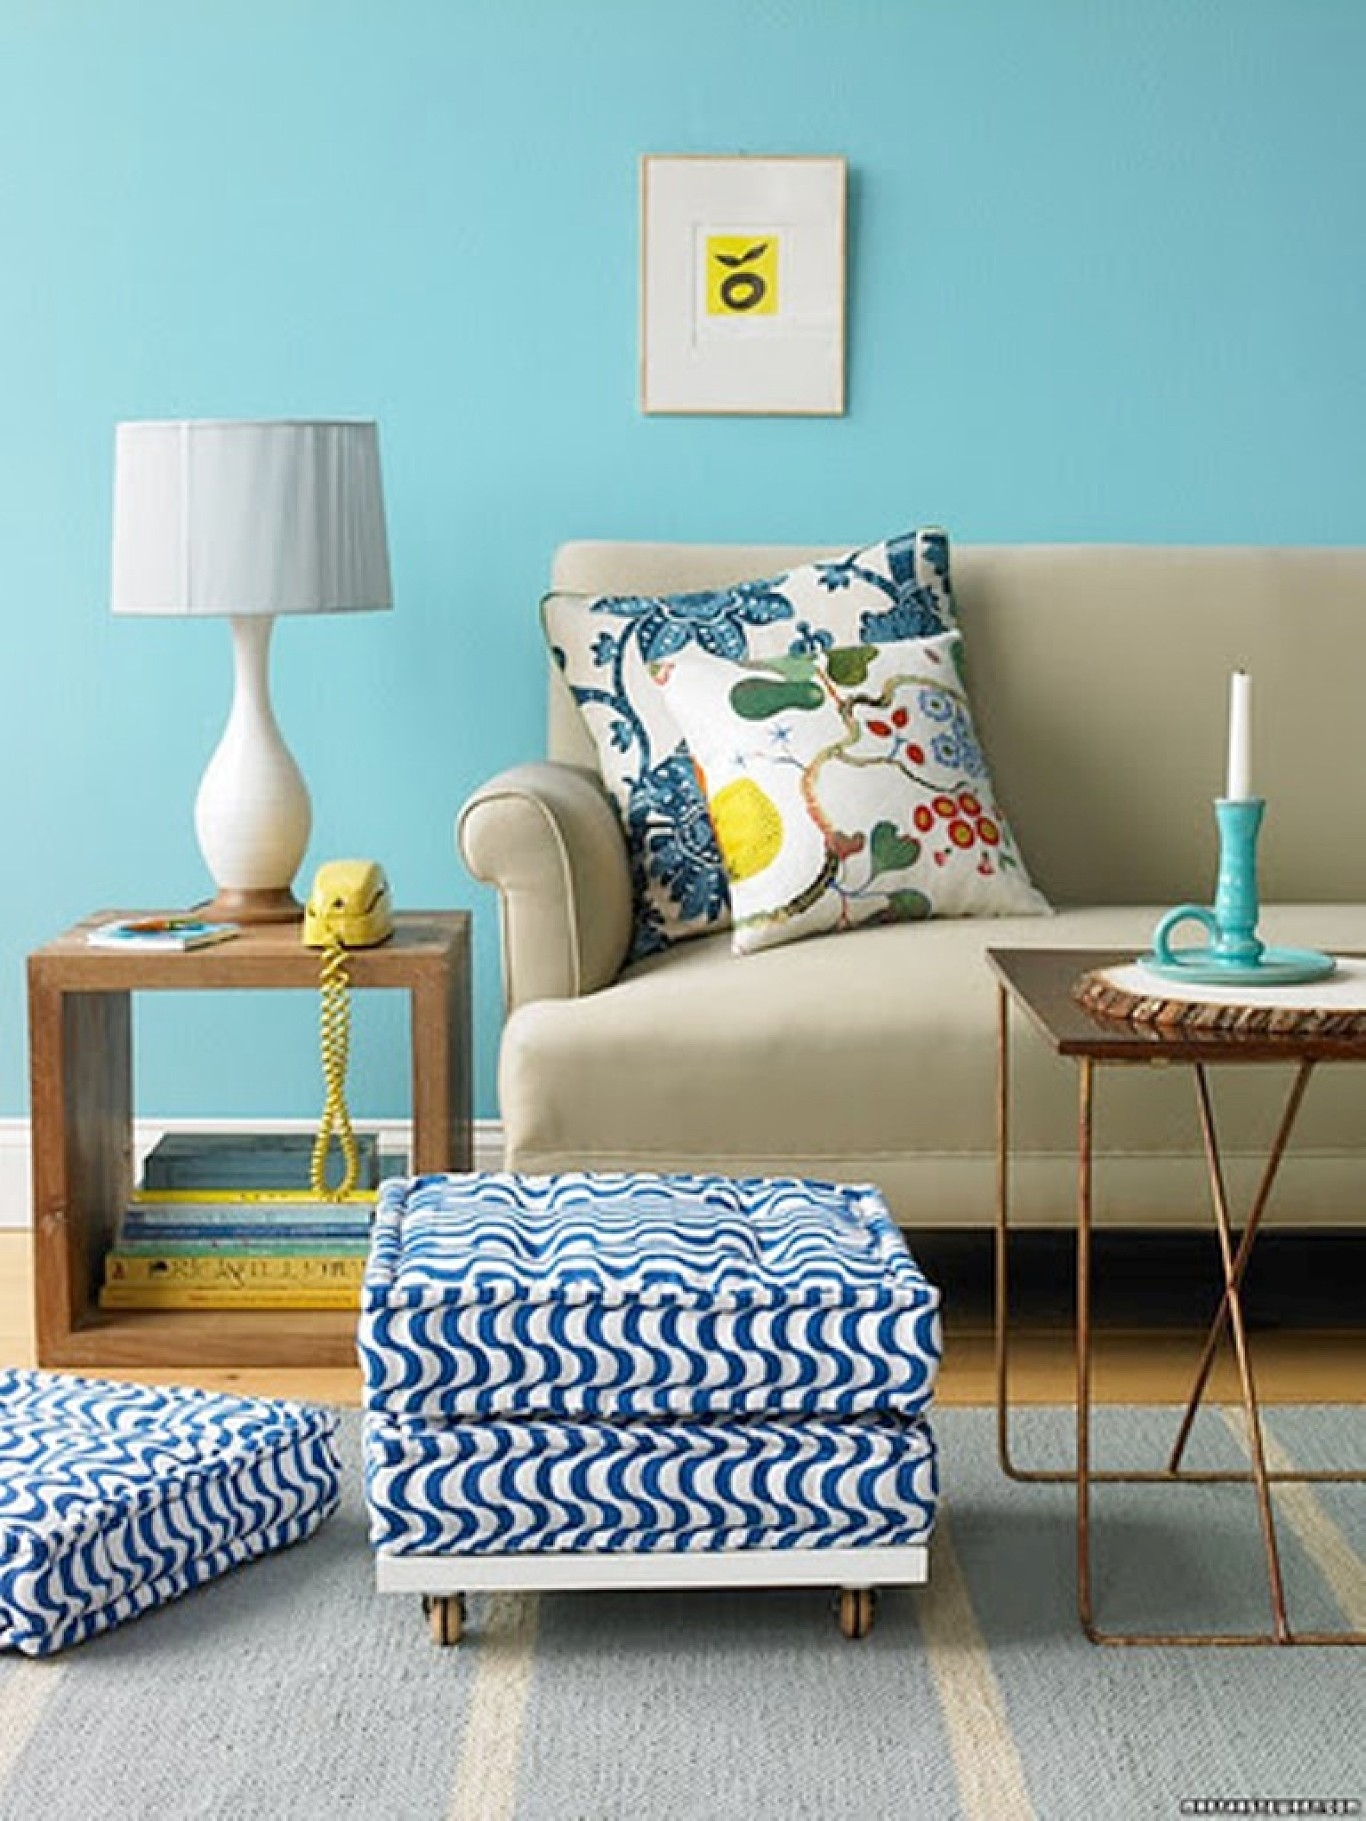 Fullsize Of Colors That Go With Teal